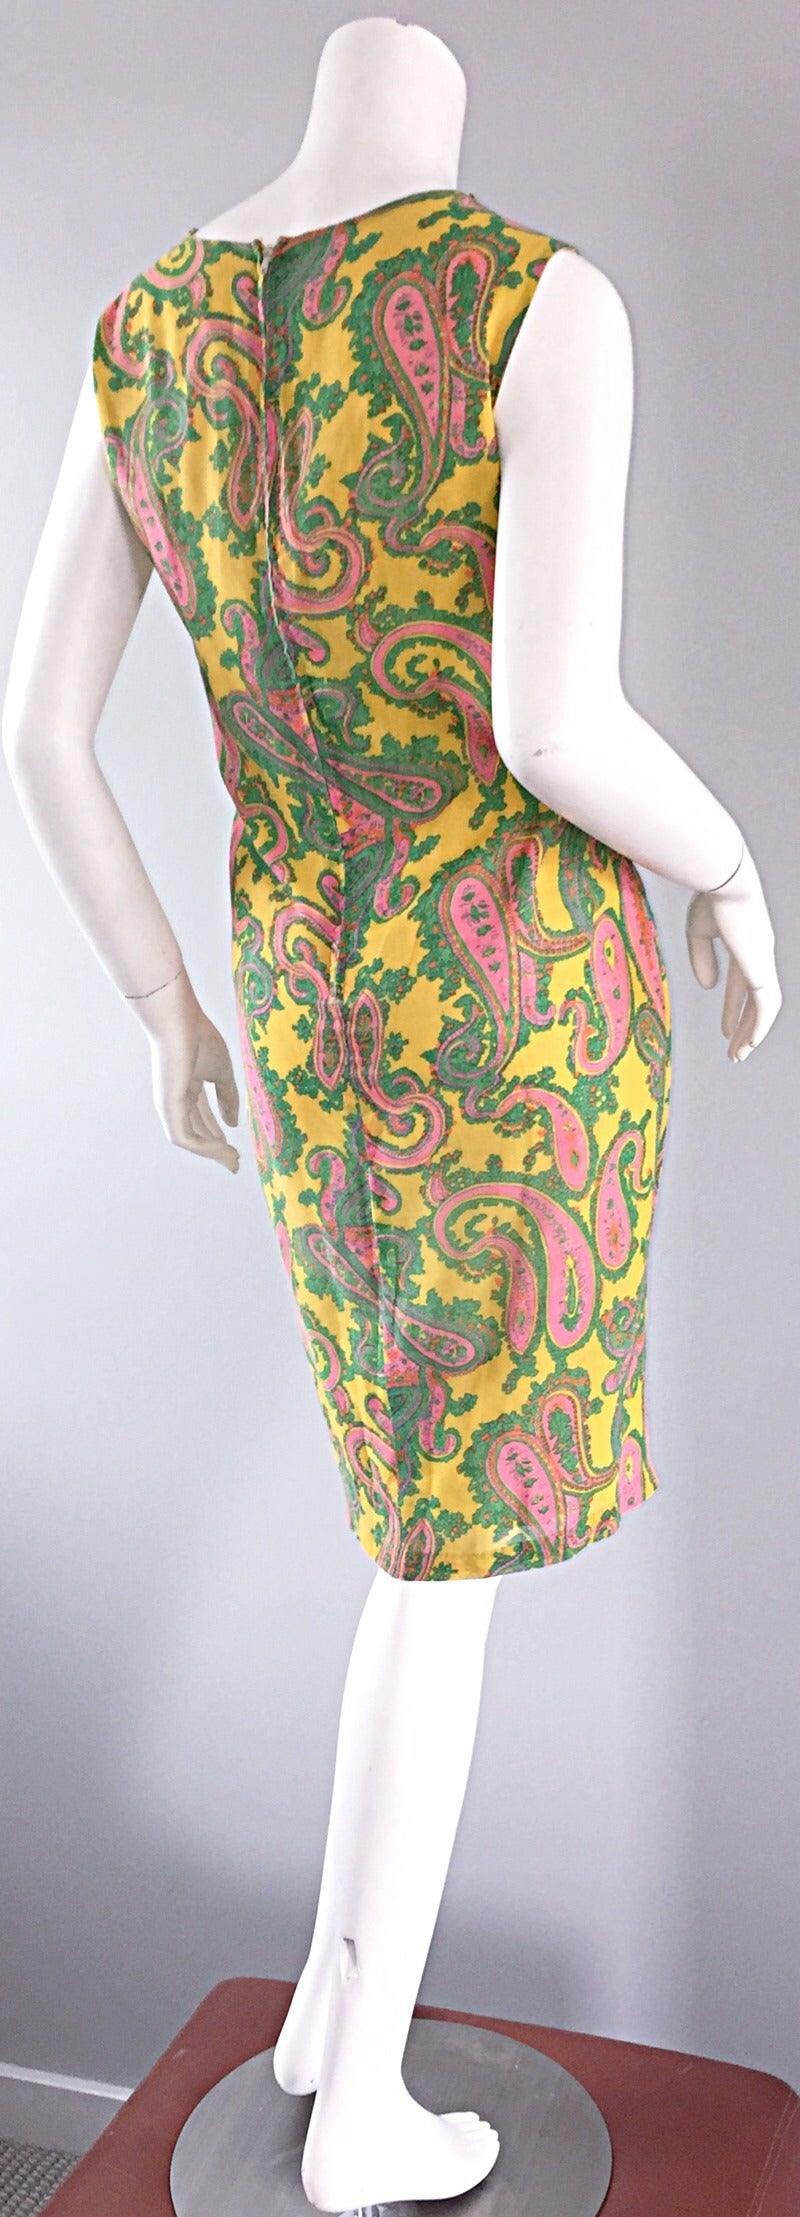 Women's 1960s 60s Yellow + Pink + Green Paisley Mod Retro Vintage Cotton Shift Dress For Sale